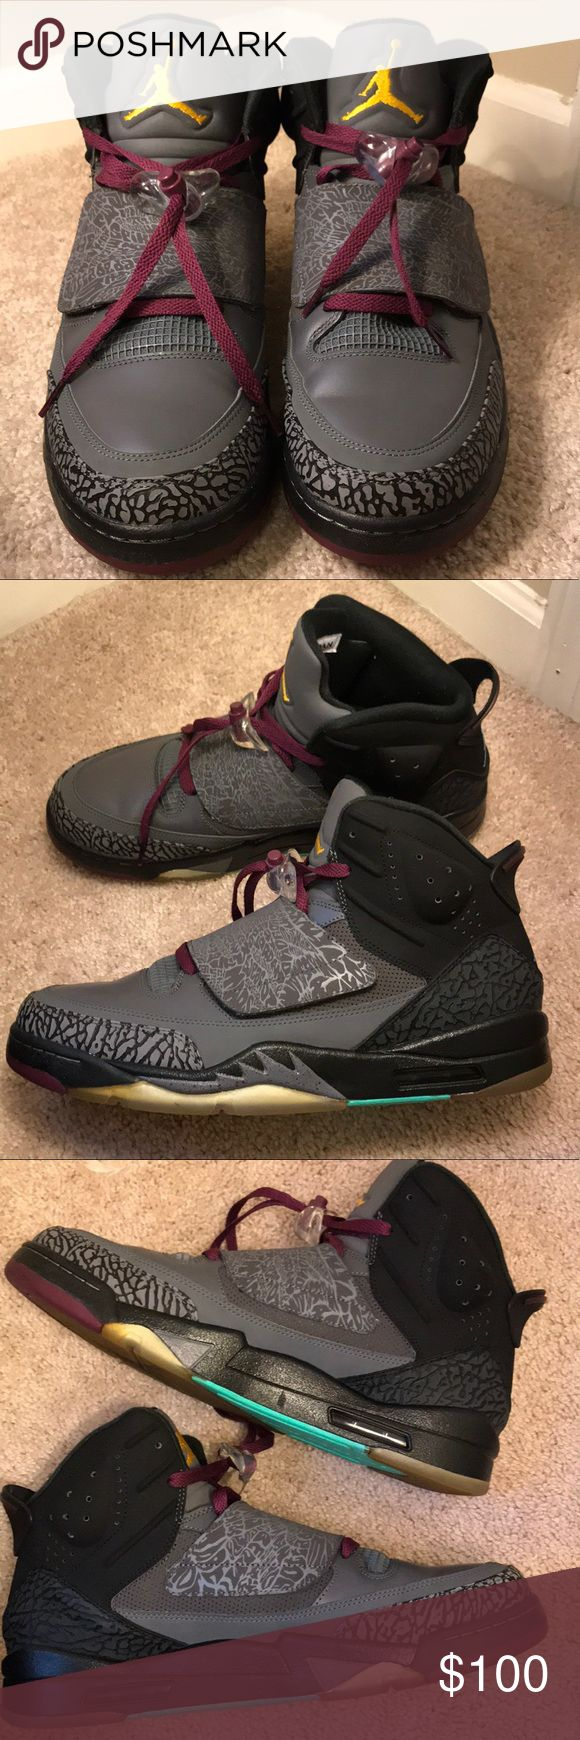 """Air Jordan Son of Mars """"Bordeaux"""" size 12.5 Yellowing at sole due to time"""